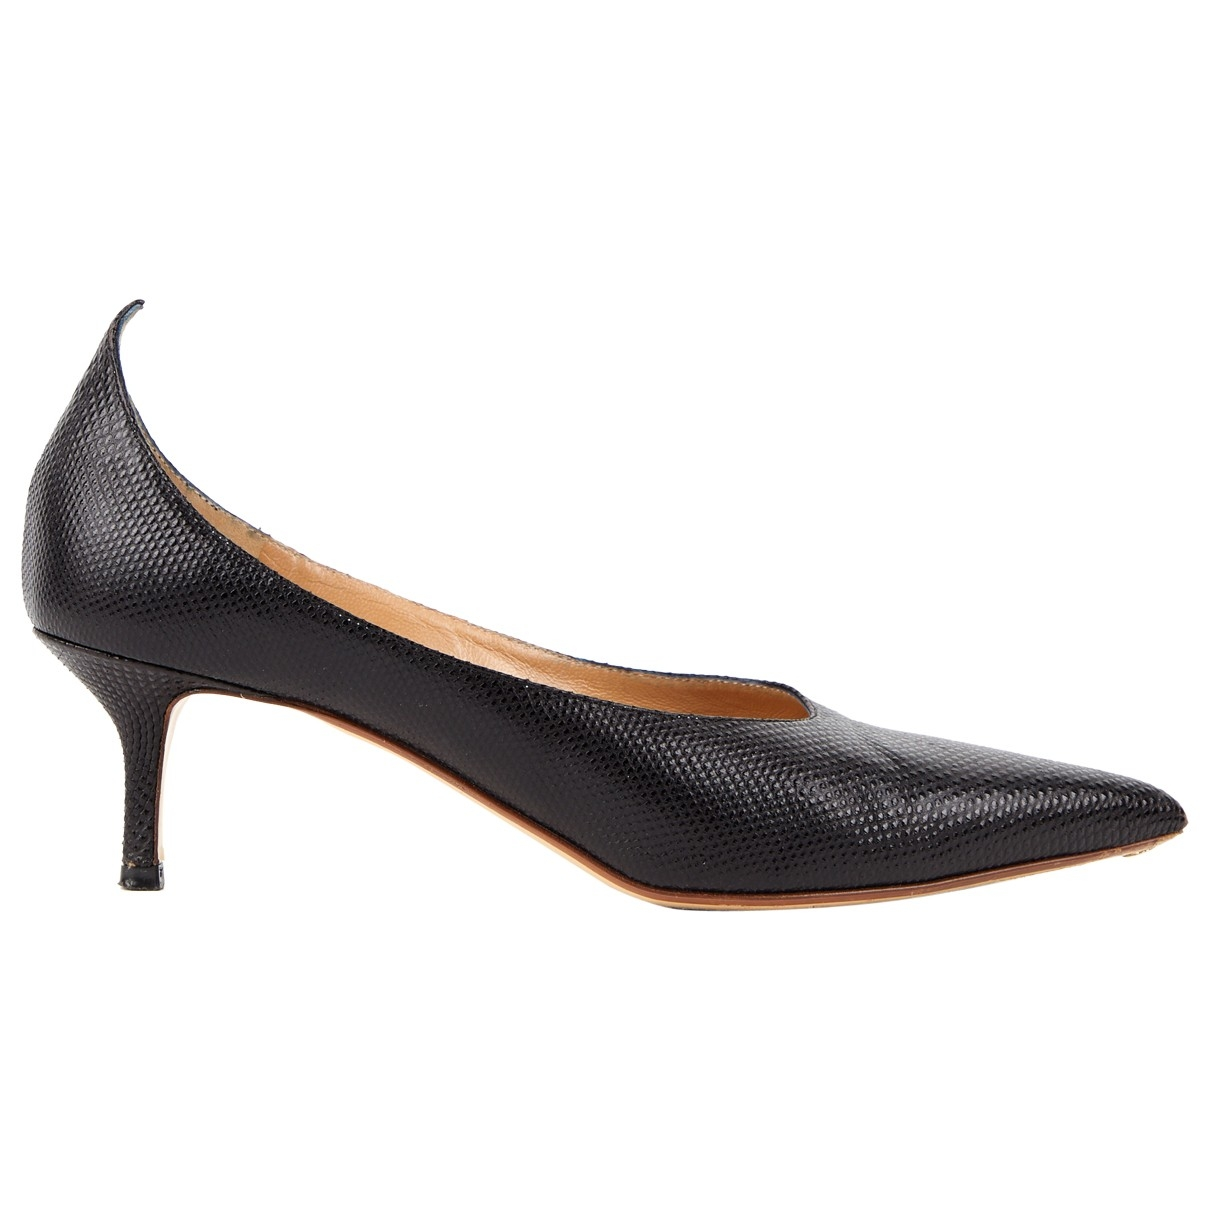 Francesco Russo \N Black Leather Heels for Women 37 EU